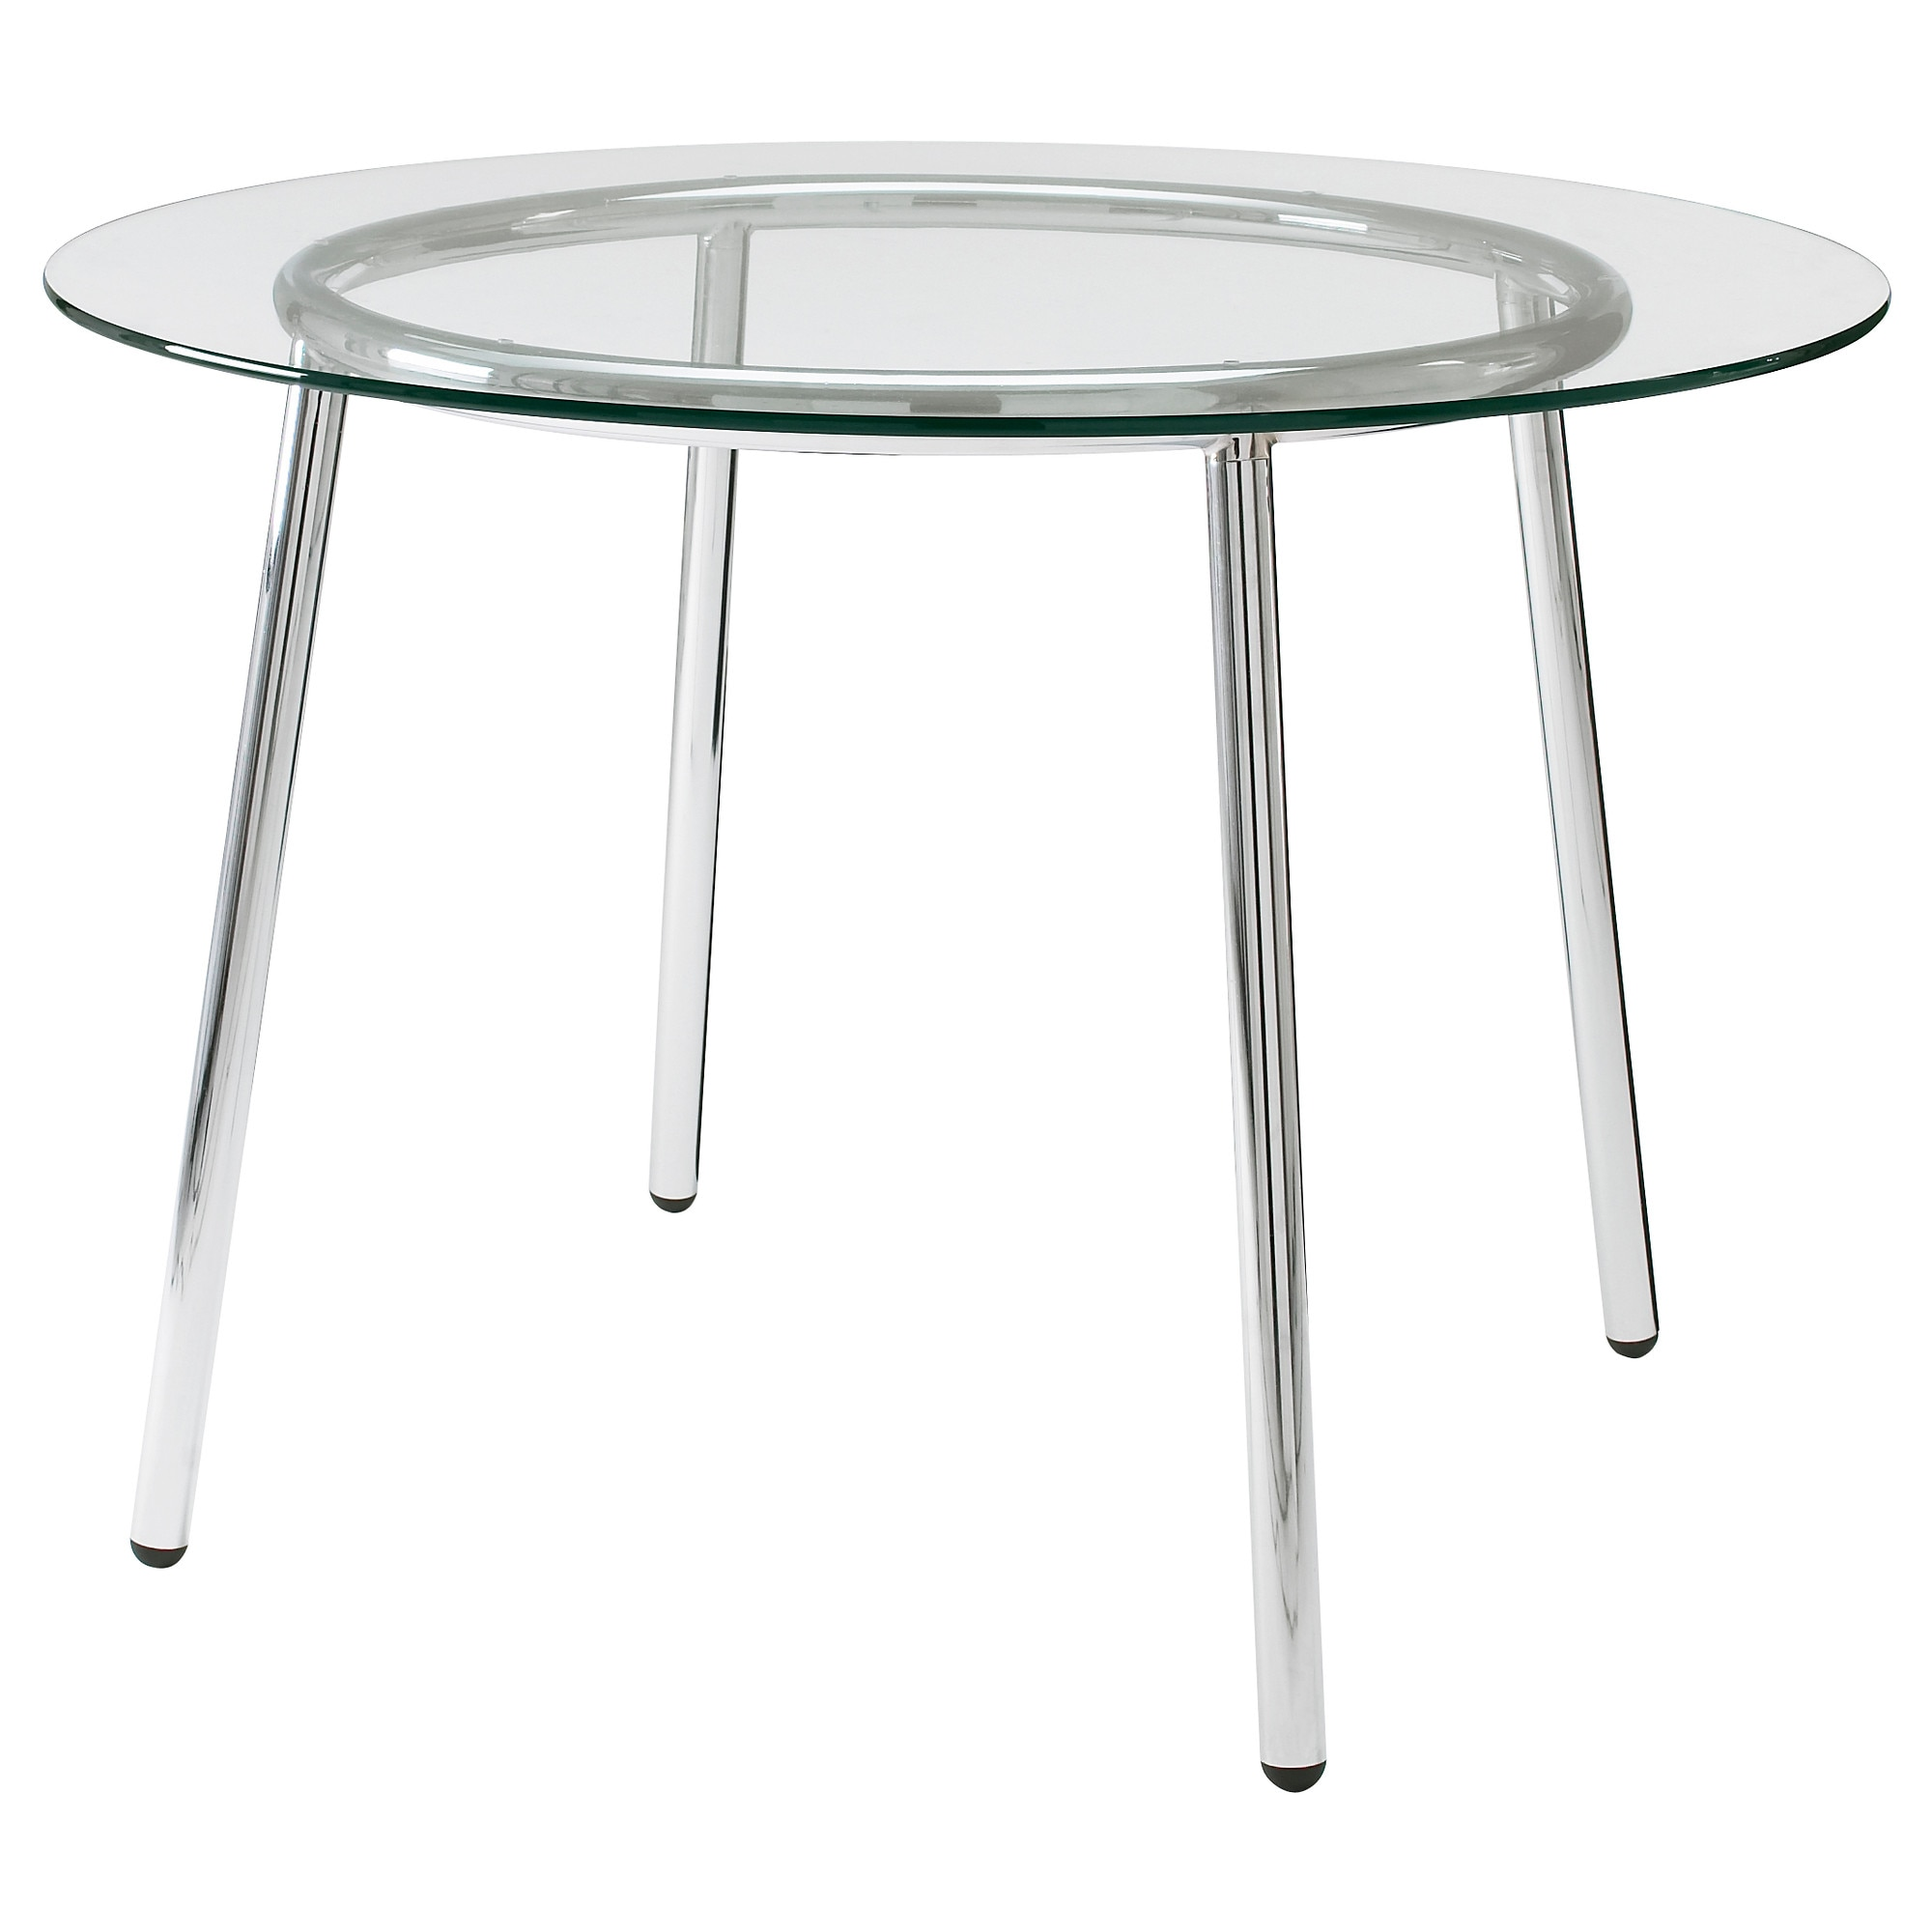 Ikea glass kitchen table - Salmi Table Glass Chrome Plated Height 28 3 4 Diameter